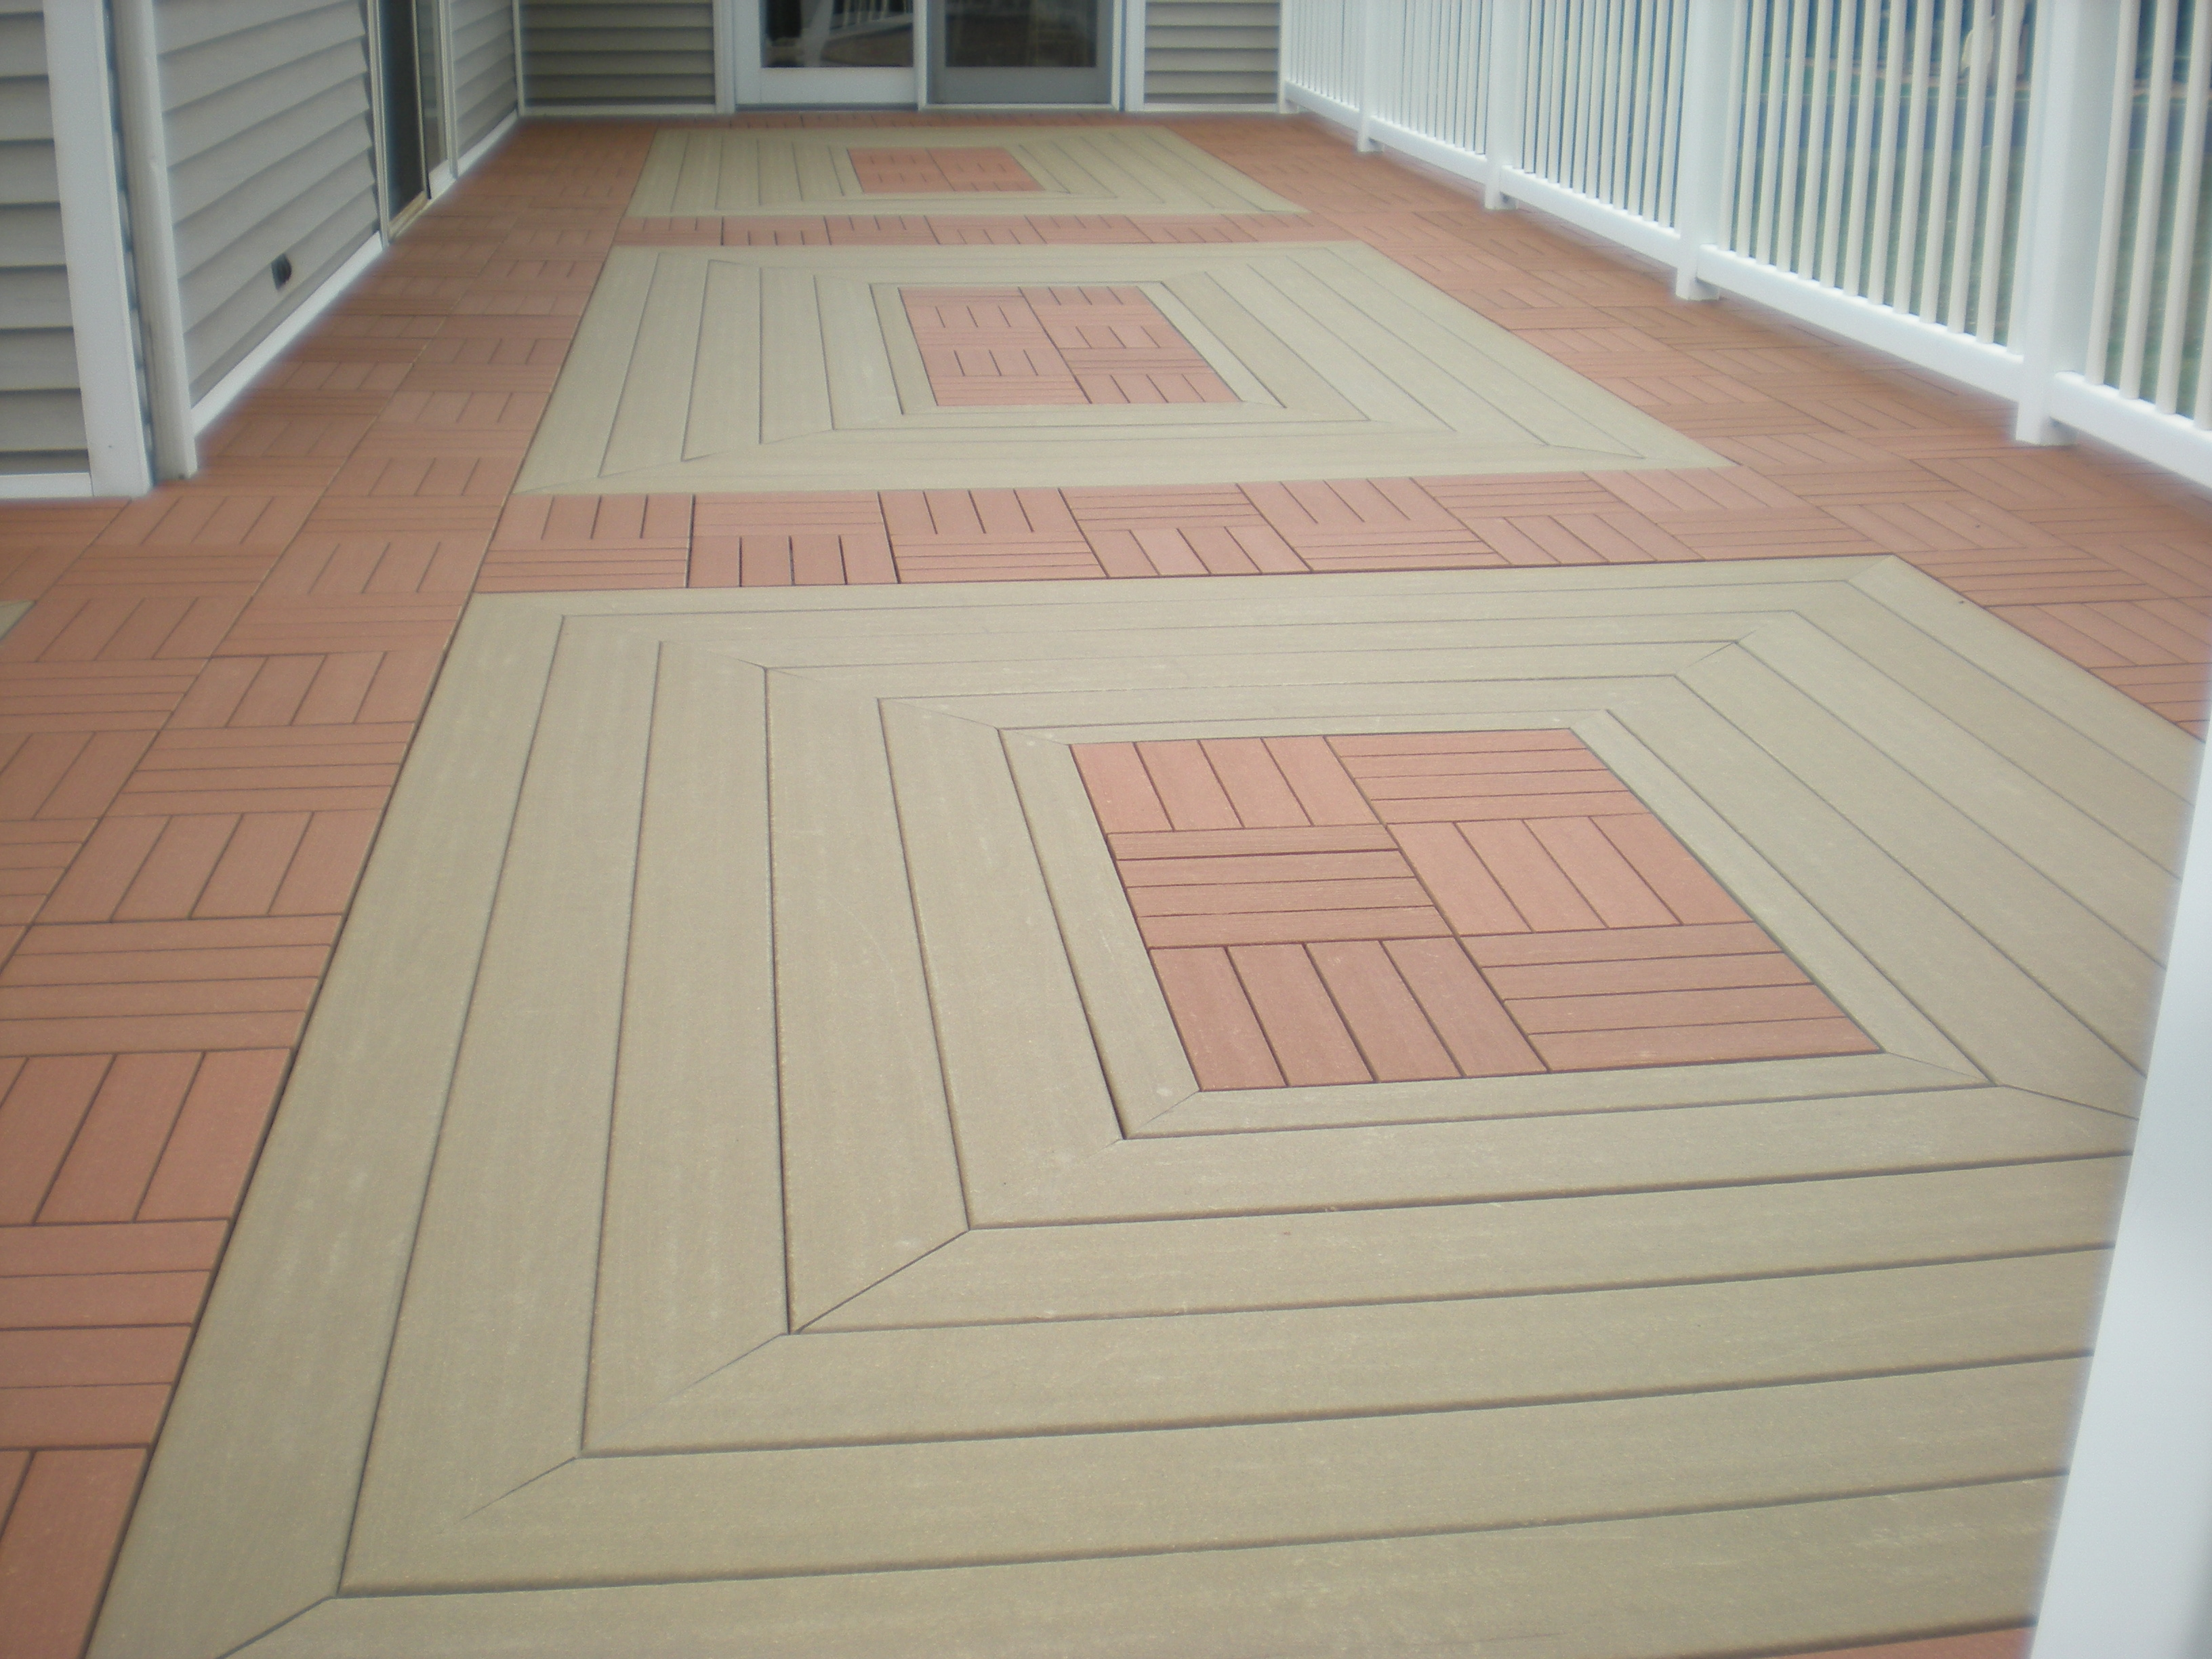 Its a snap ecoshieldtm deck tiles video clip shows ease of a combination of moistureshield composite decking ecoshield deck tiles give a new look to an existing deck baanklon Image collections